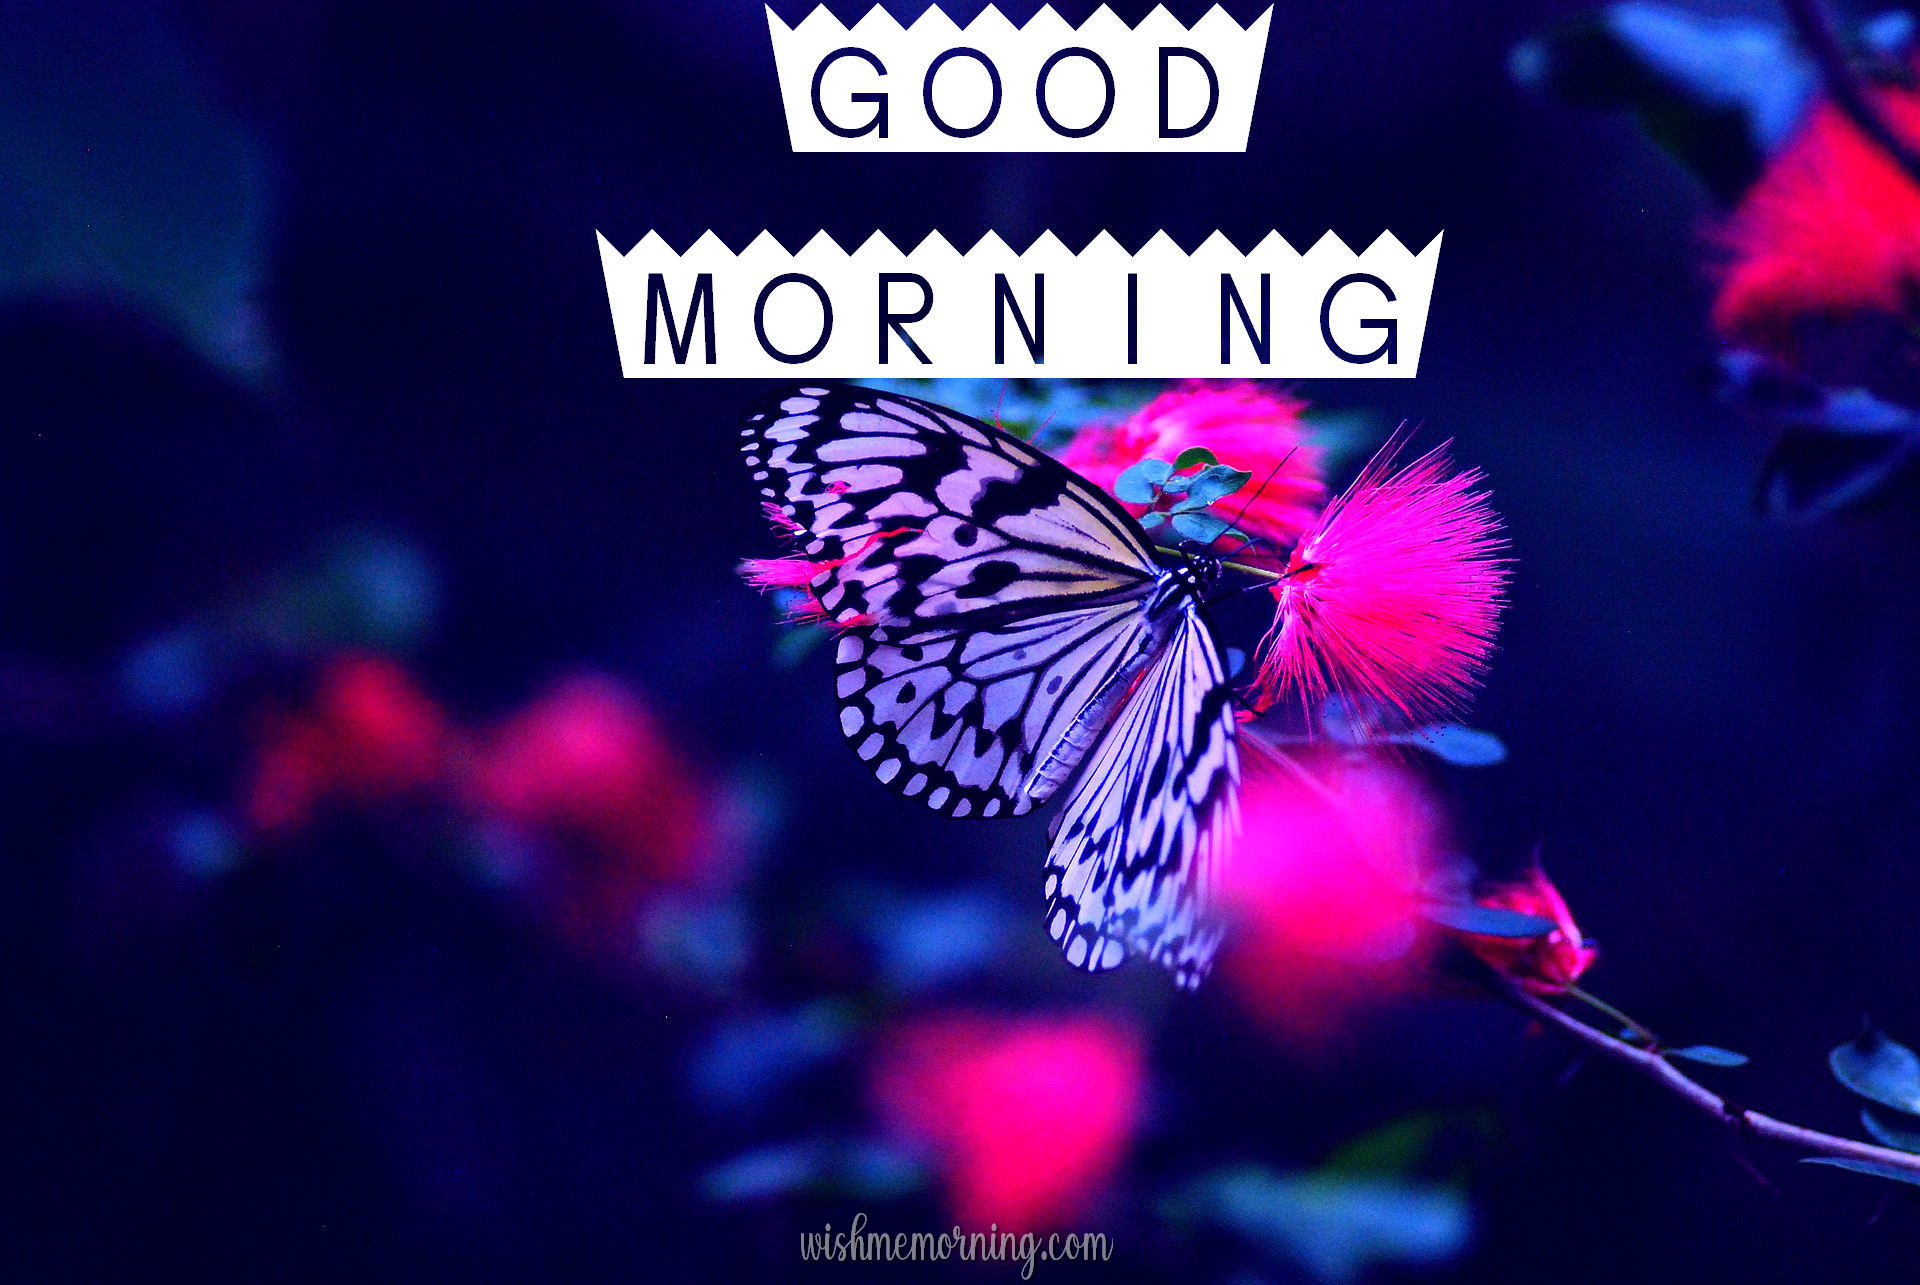 Beautiful Butterfly Good Morning Images wishmemorning.com 16